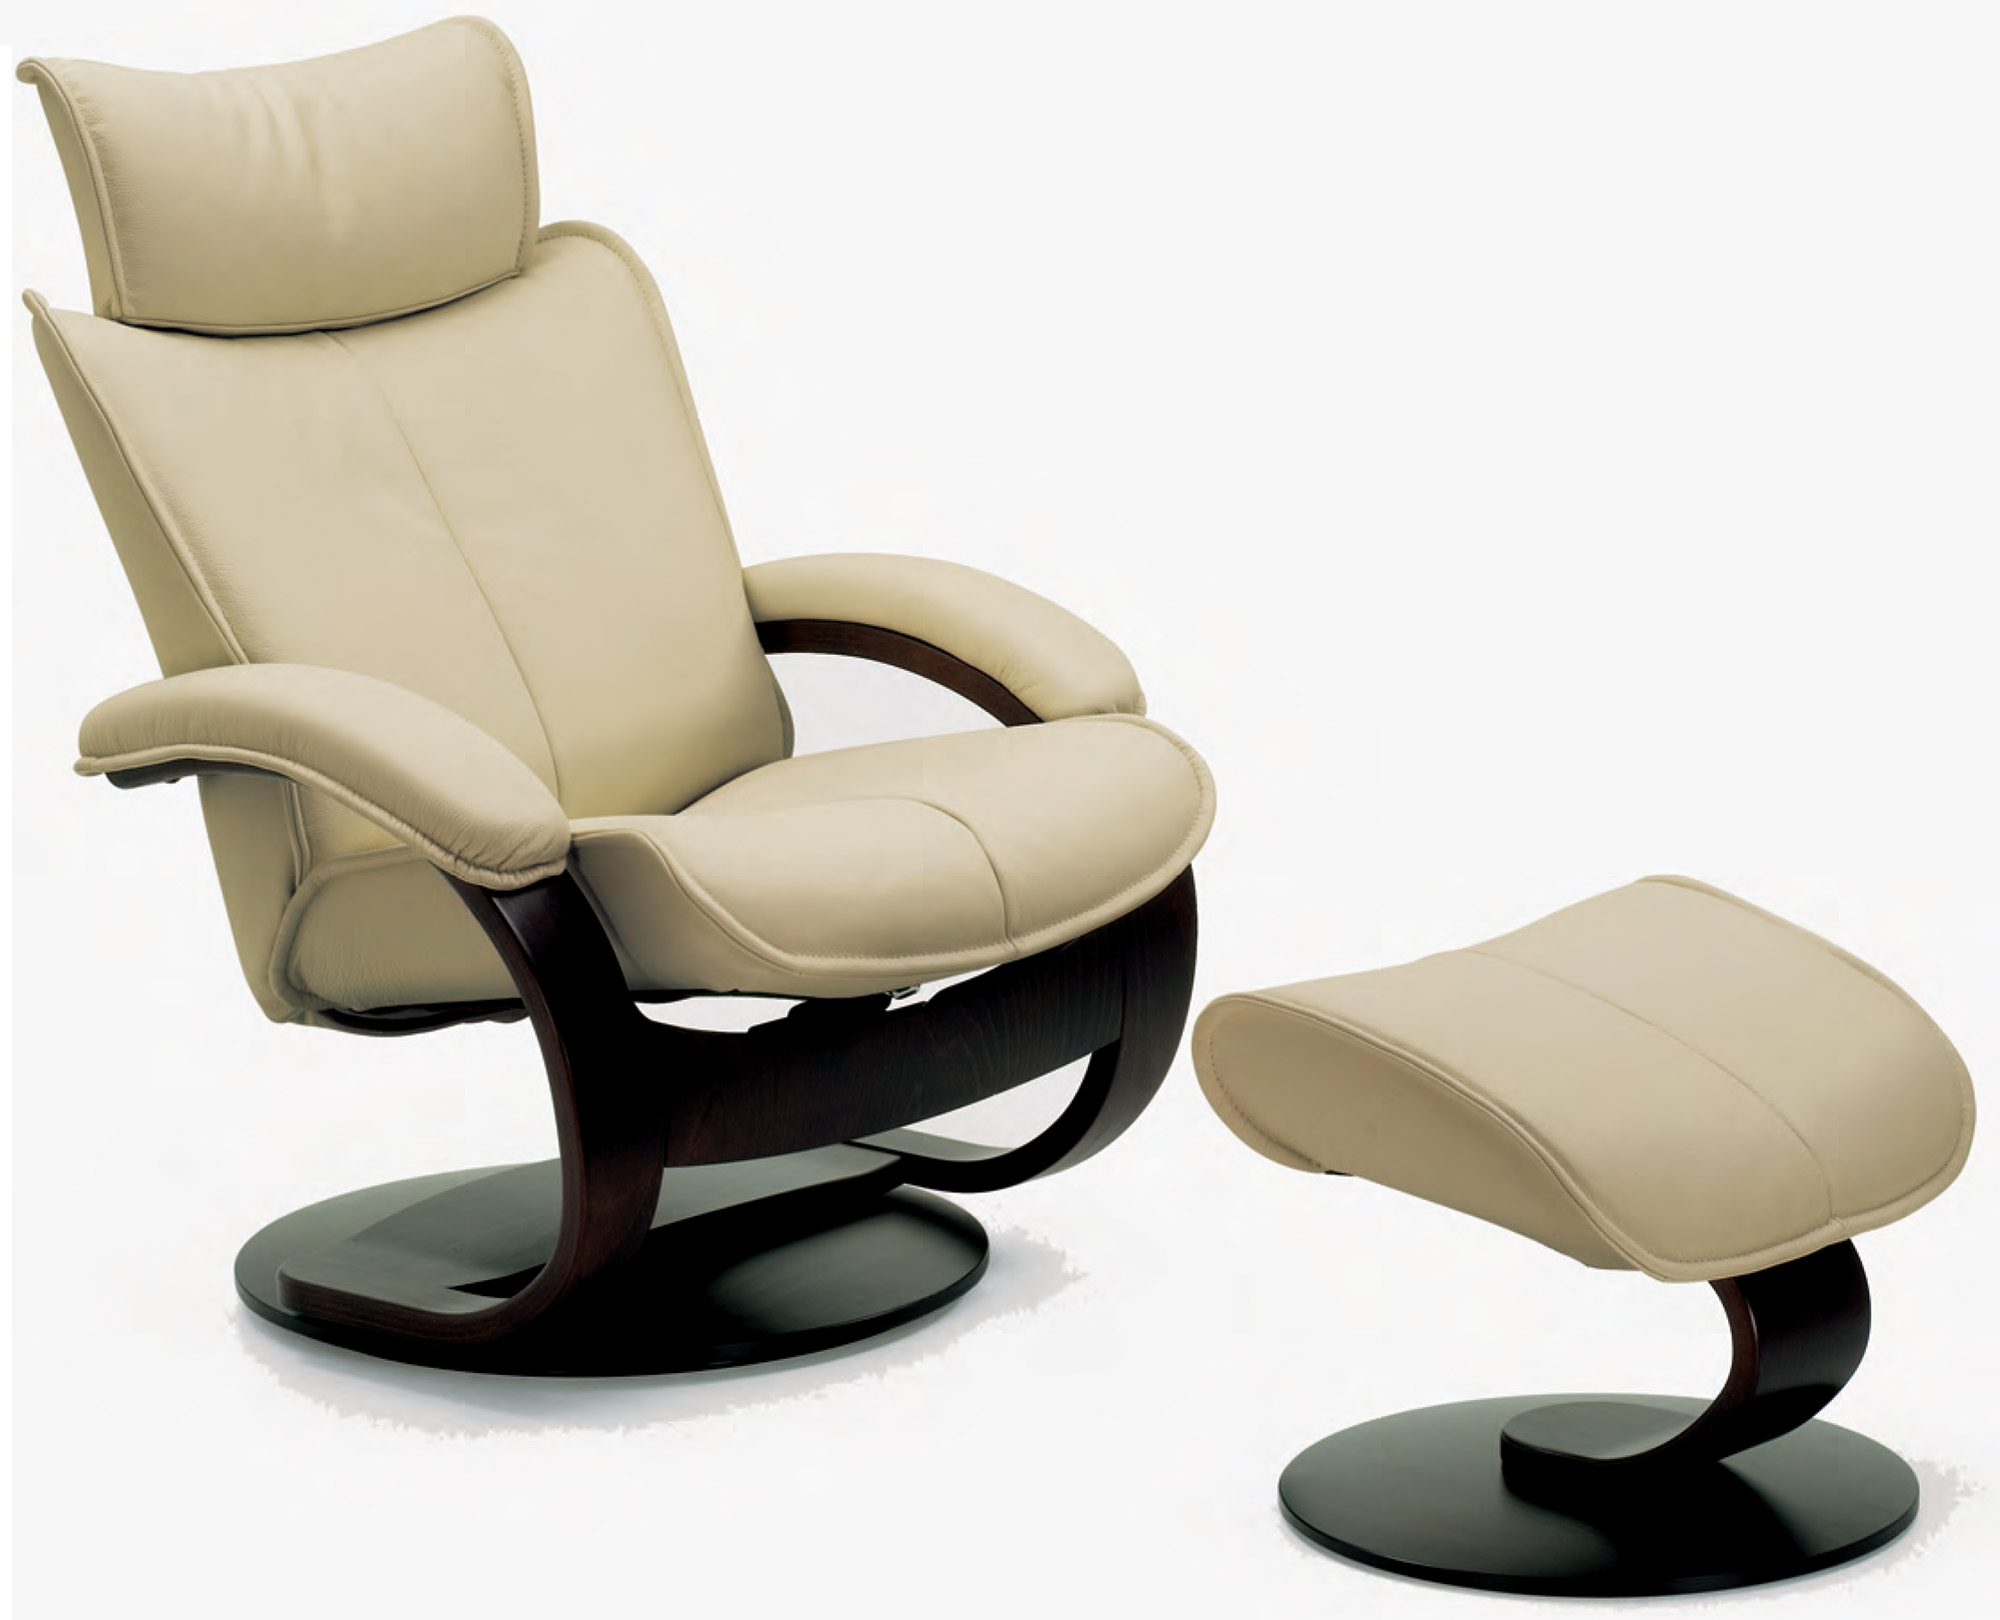 Fjords ona ergonomic leather recliner chair ottoman scandinavian norwegian lounge chair by - Scandinavian chair ...